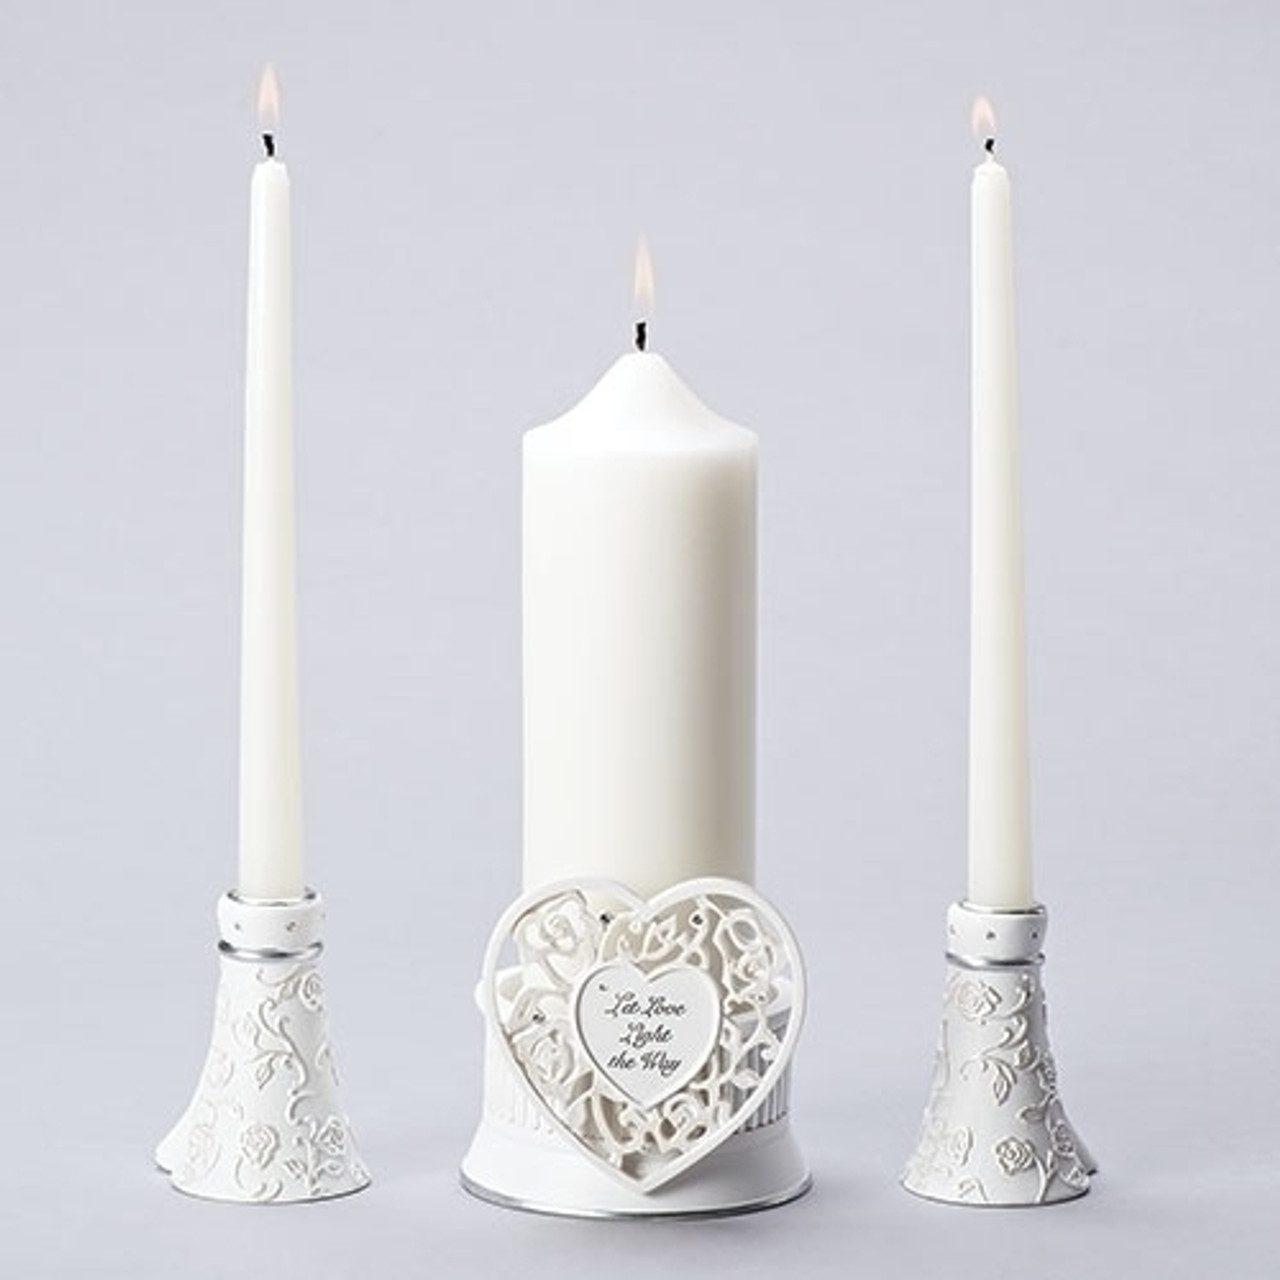 755f26f45f Unity Wedding Candle Set made of polyresin with accent heart reading let  love light the way